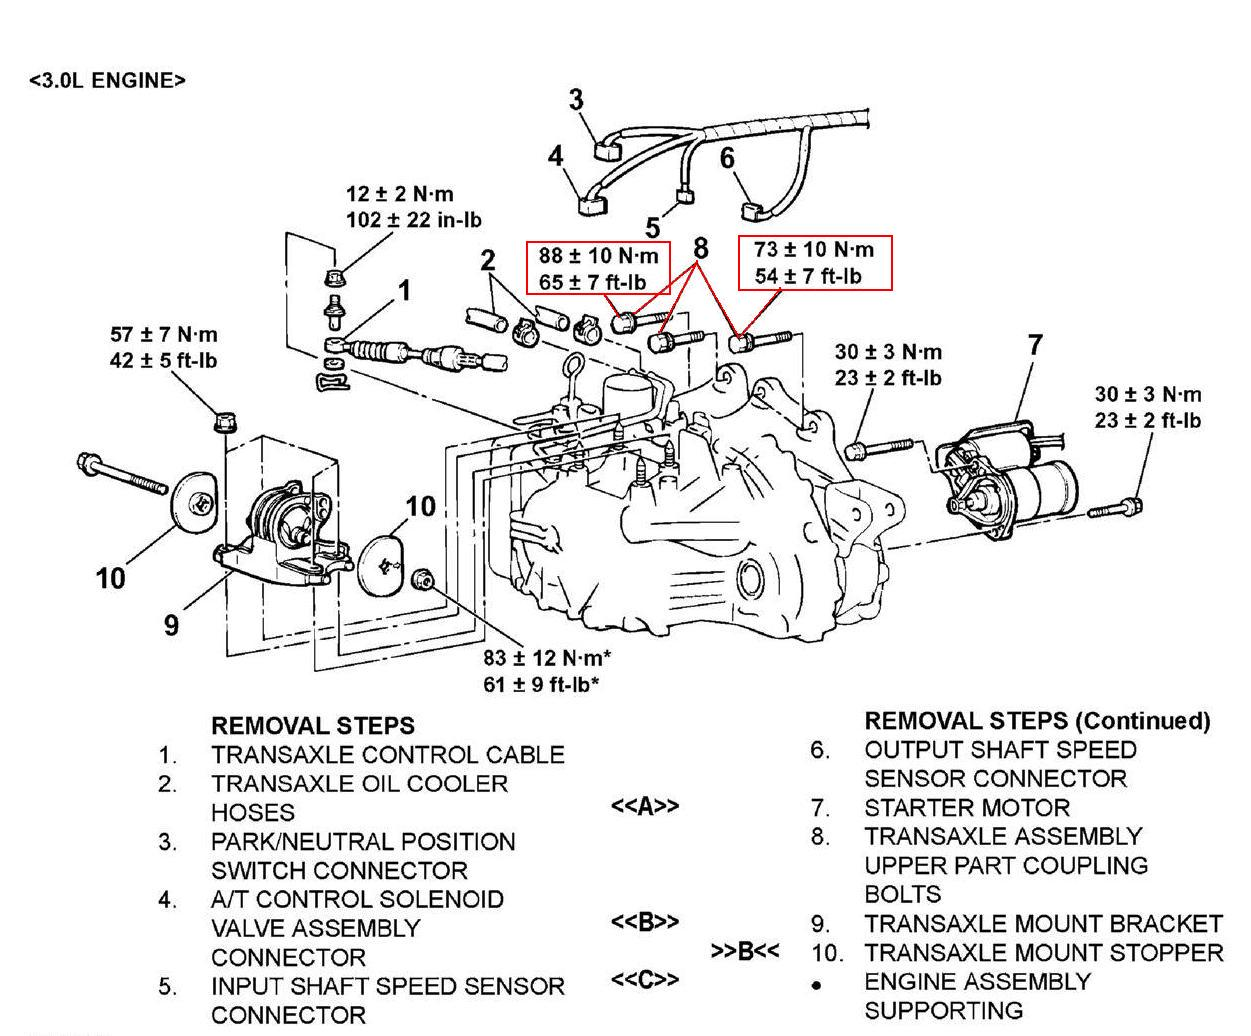 ford mustang radio wiring diagram discover your wiring 2000 mitsubishi eclipse gt engine diagram